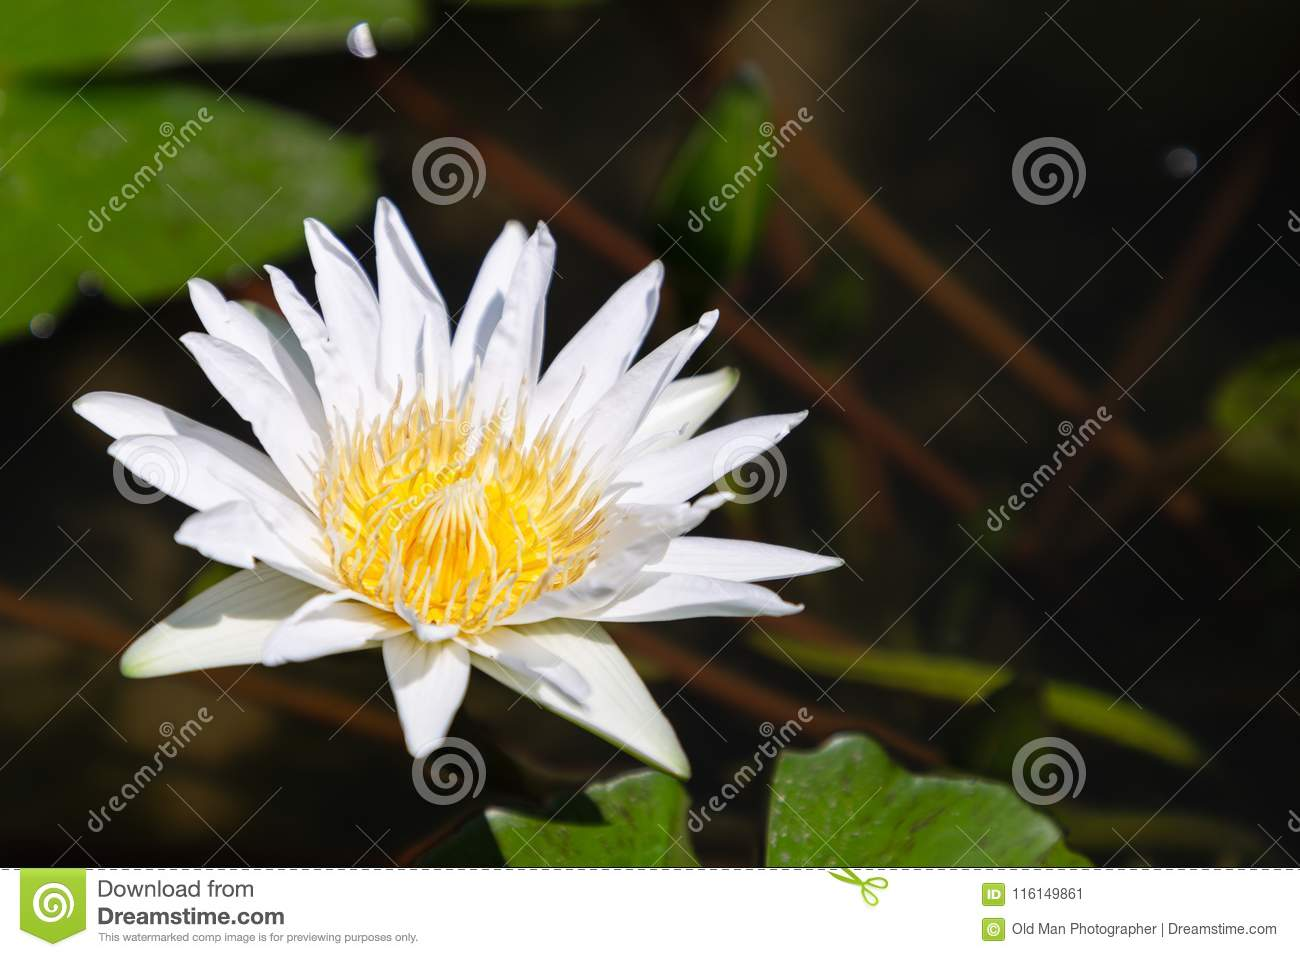 Lotus Flower Or Water Lily Flower Blooming With Green Leaves